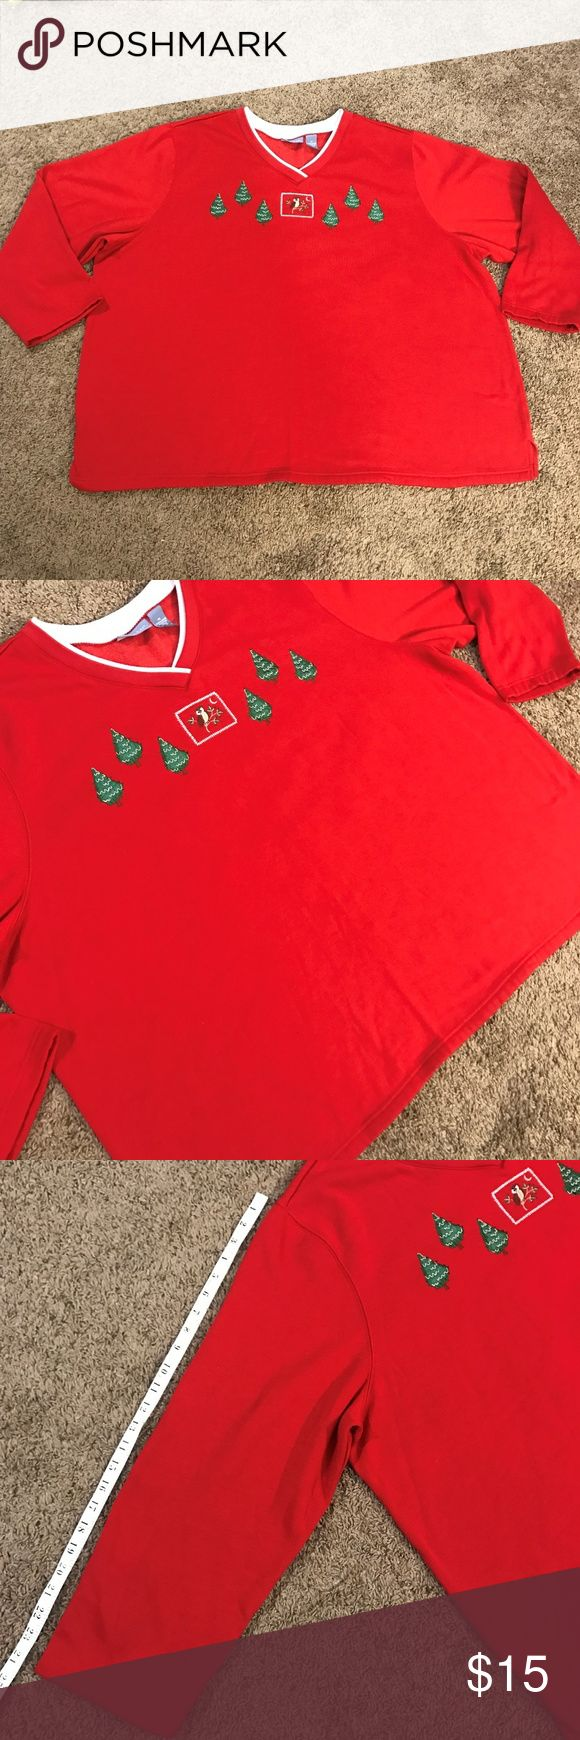 Liz & Me plus size Comfy Christmas Sweater In very good used shape no noticeable flaws Liz & Me Sweaters